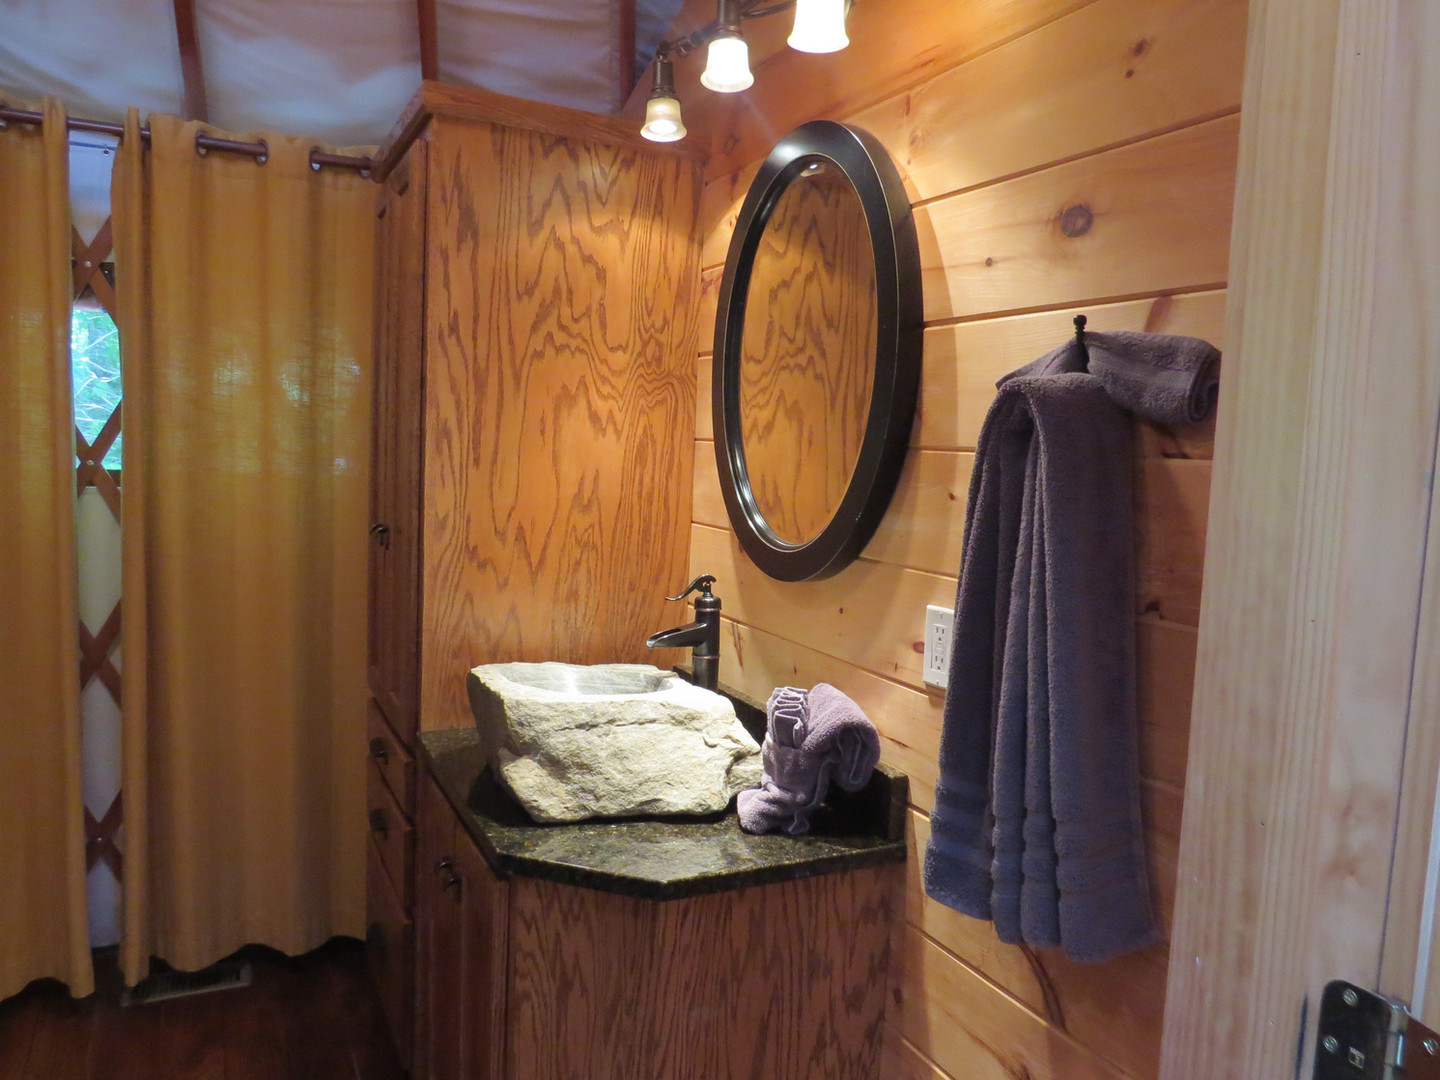 A lush private bath awaits guests in the Nantahala yurt, complete with handmade rock sink, walk-in shower, and all towels provided for your stay.